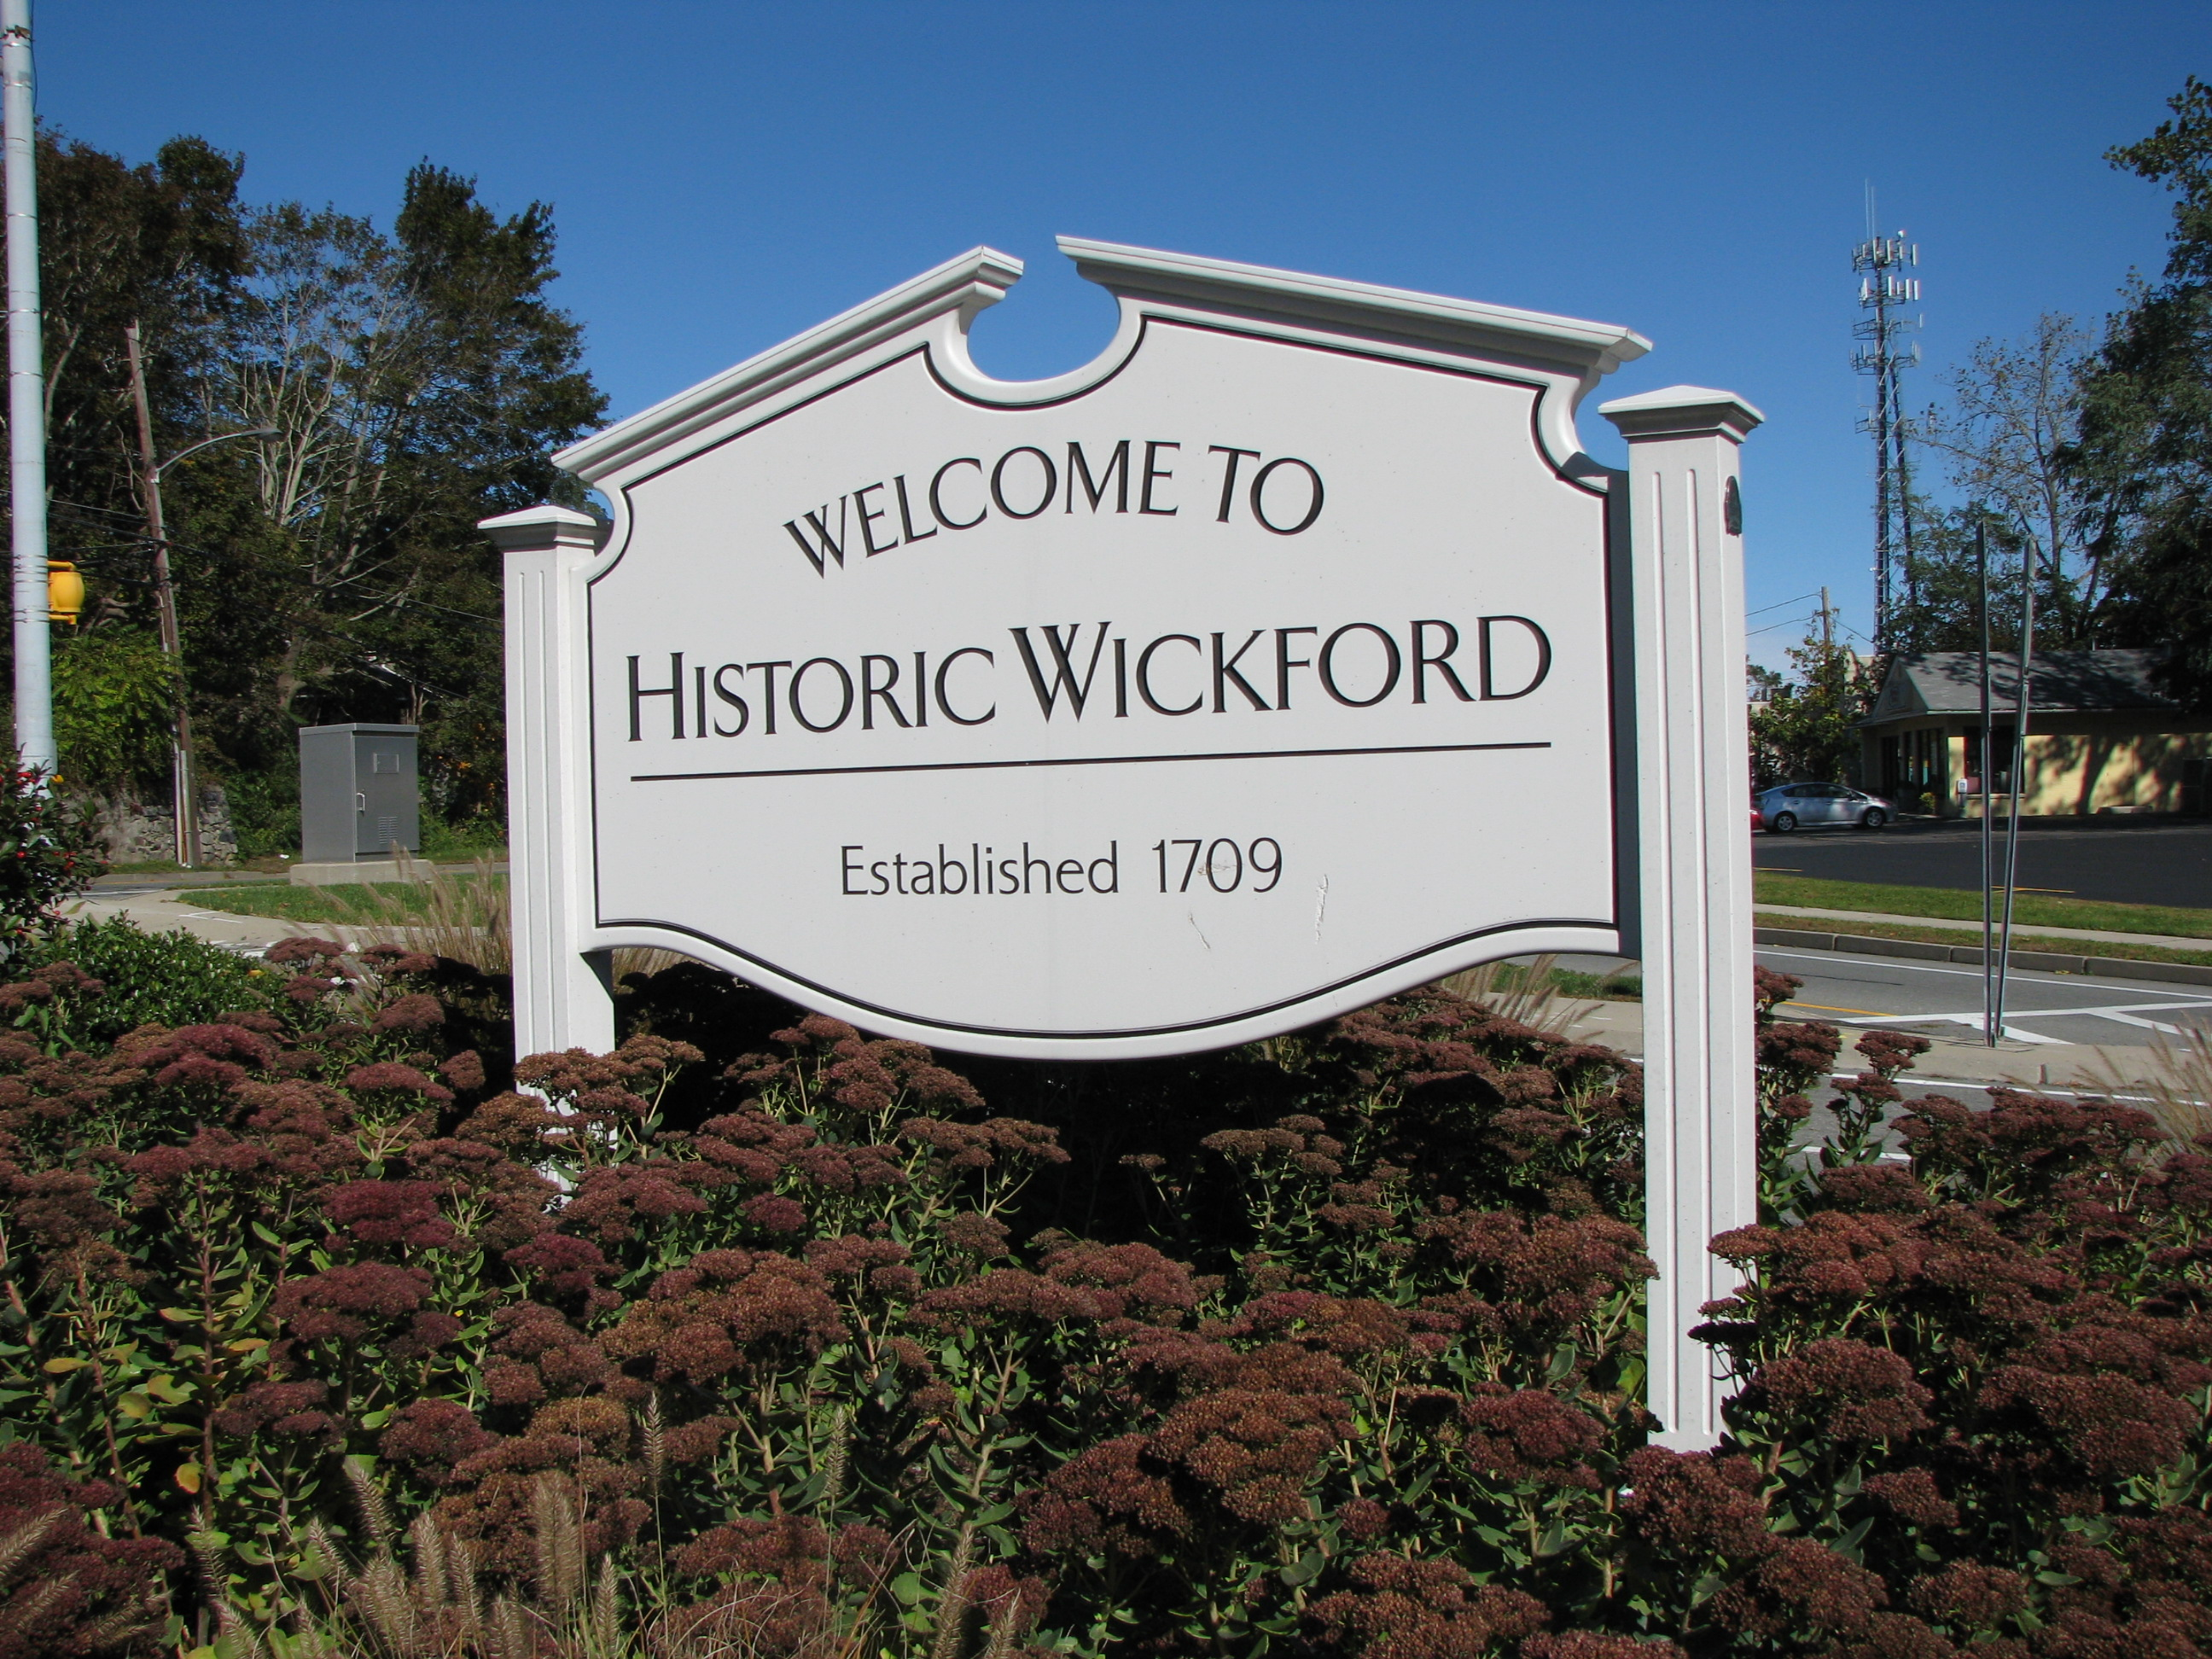 IMG_4386 Welcome to Wickford.JPG